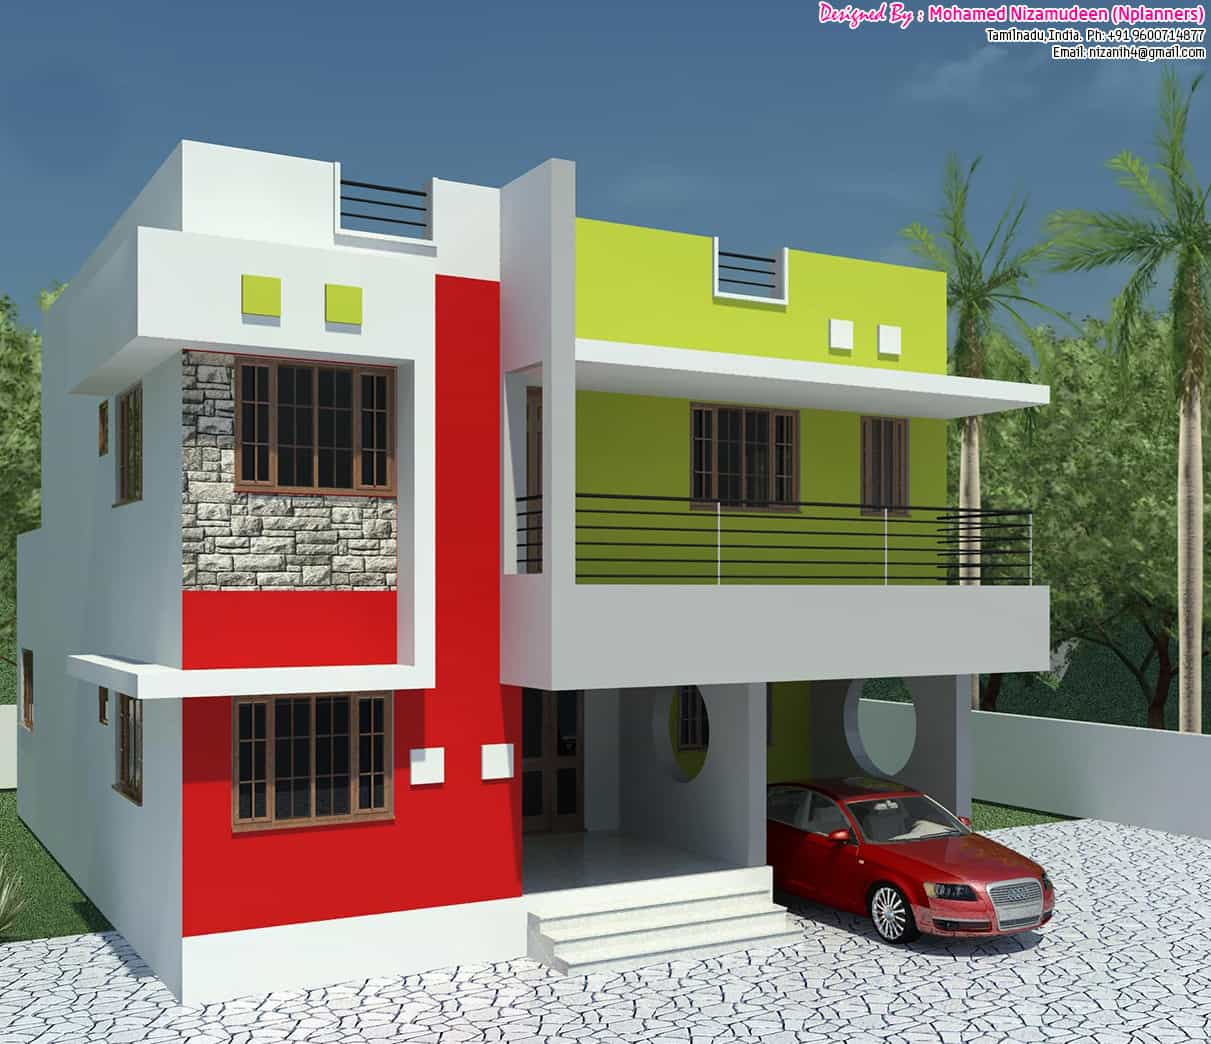 Affordable Basic 3BHK Home Design At 1300 Sq.ft